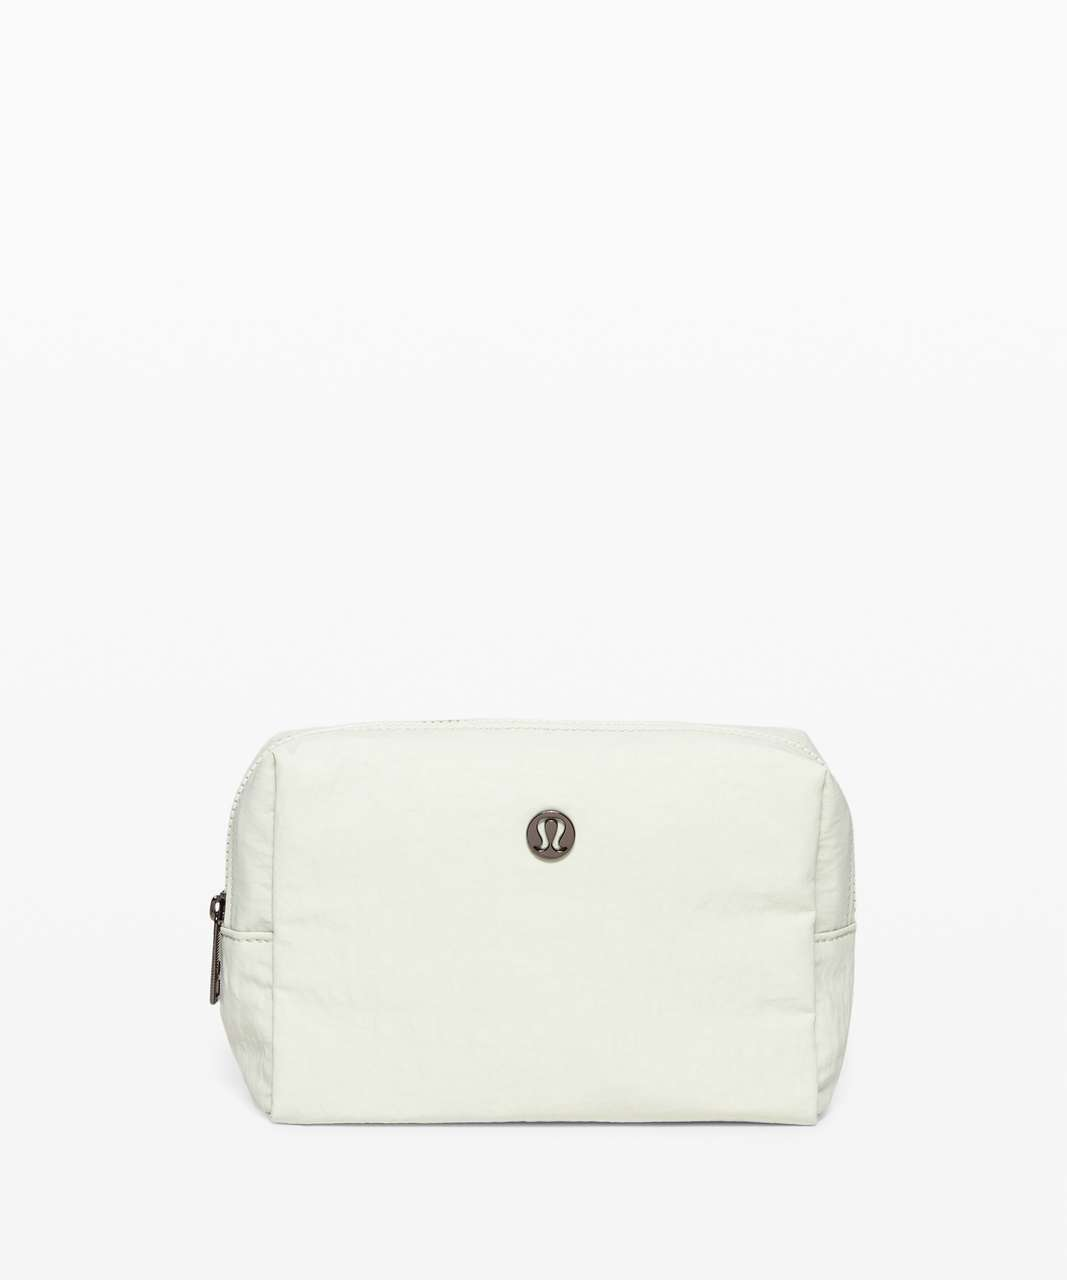 Lululemon All Your Small Things Pouch *Mini 2L - Springtime